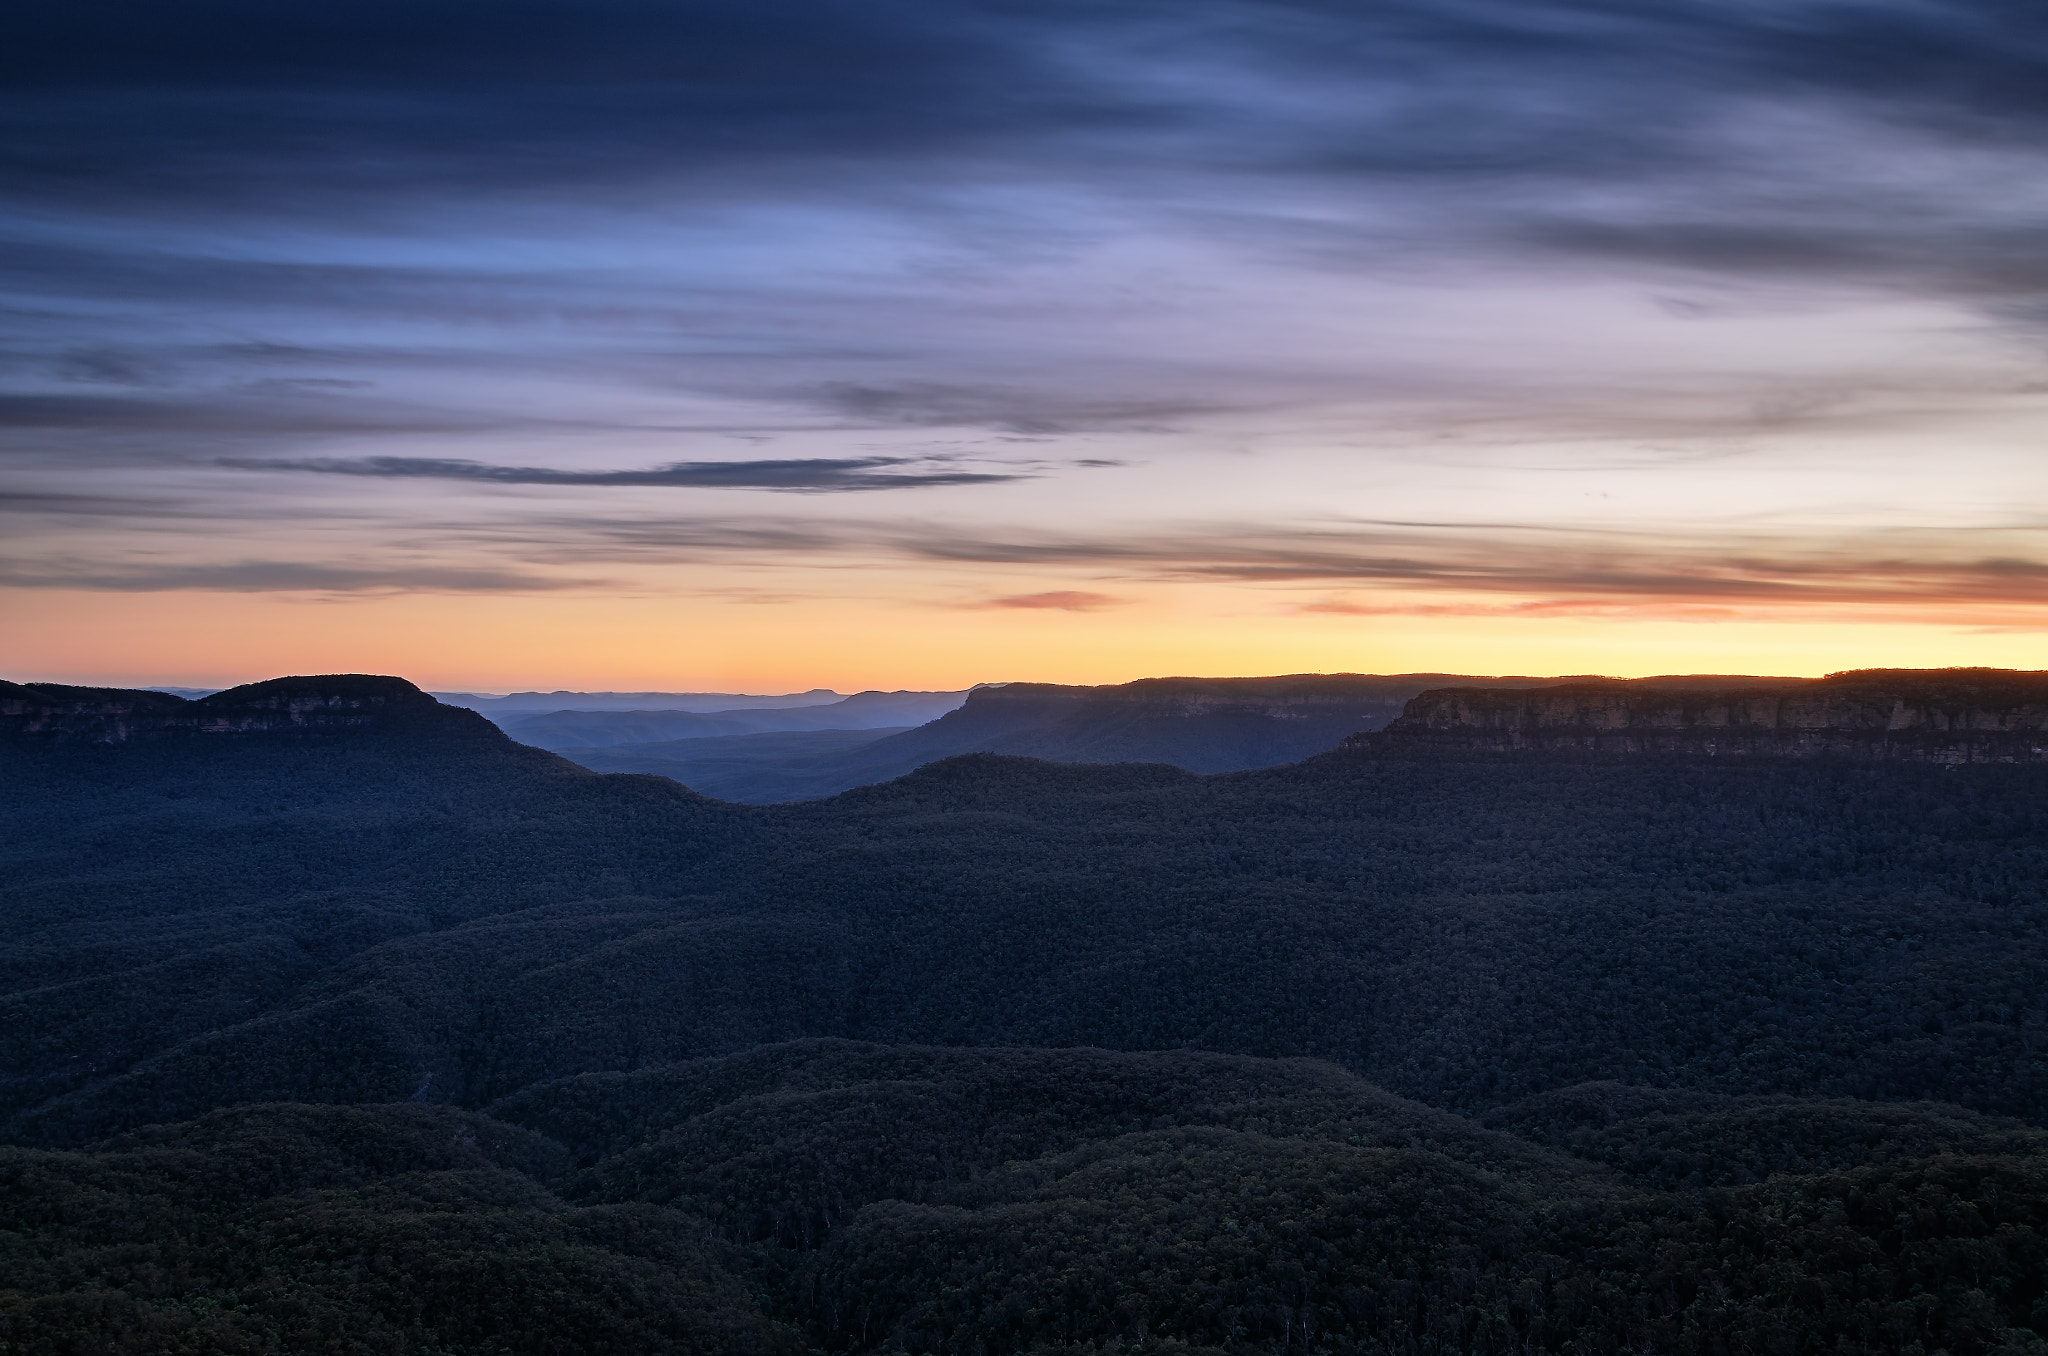 Photograph Blue Moutains by Daniel Beck on 500px